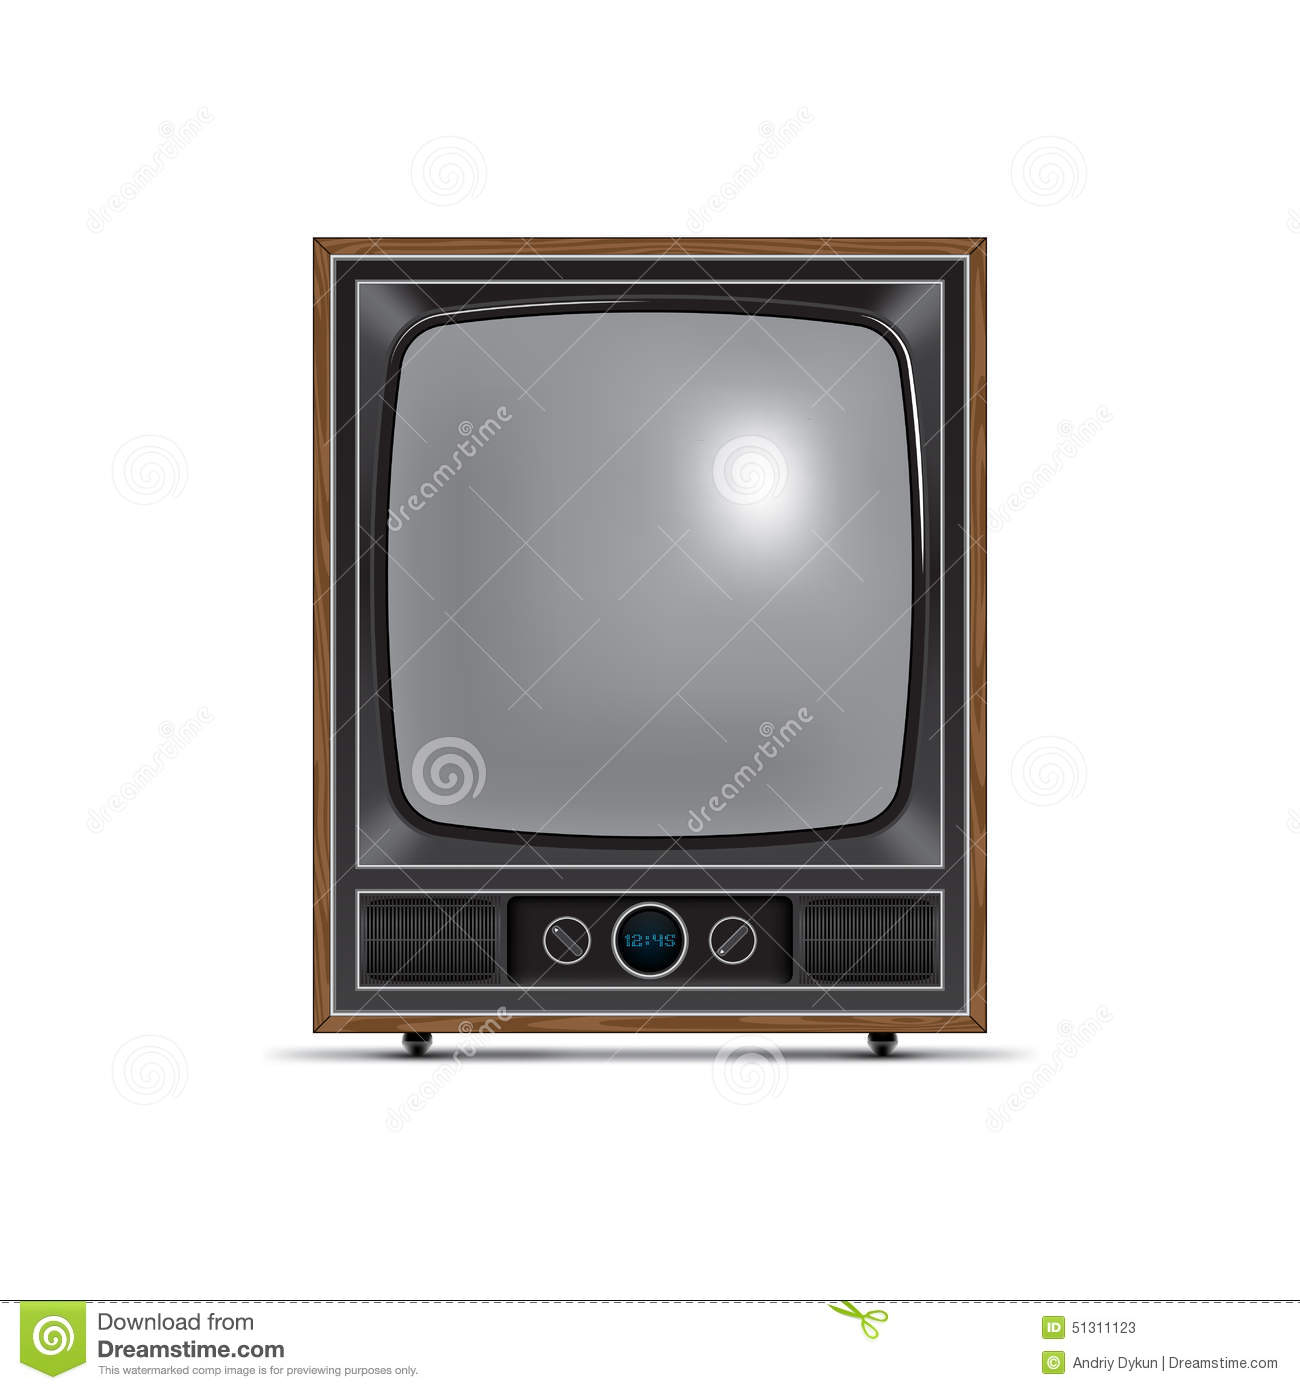 Square Screen Retro Tv Stock Vector - Image: 51311123